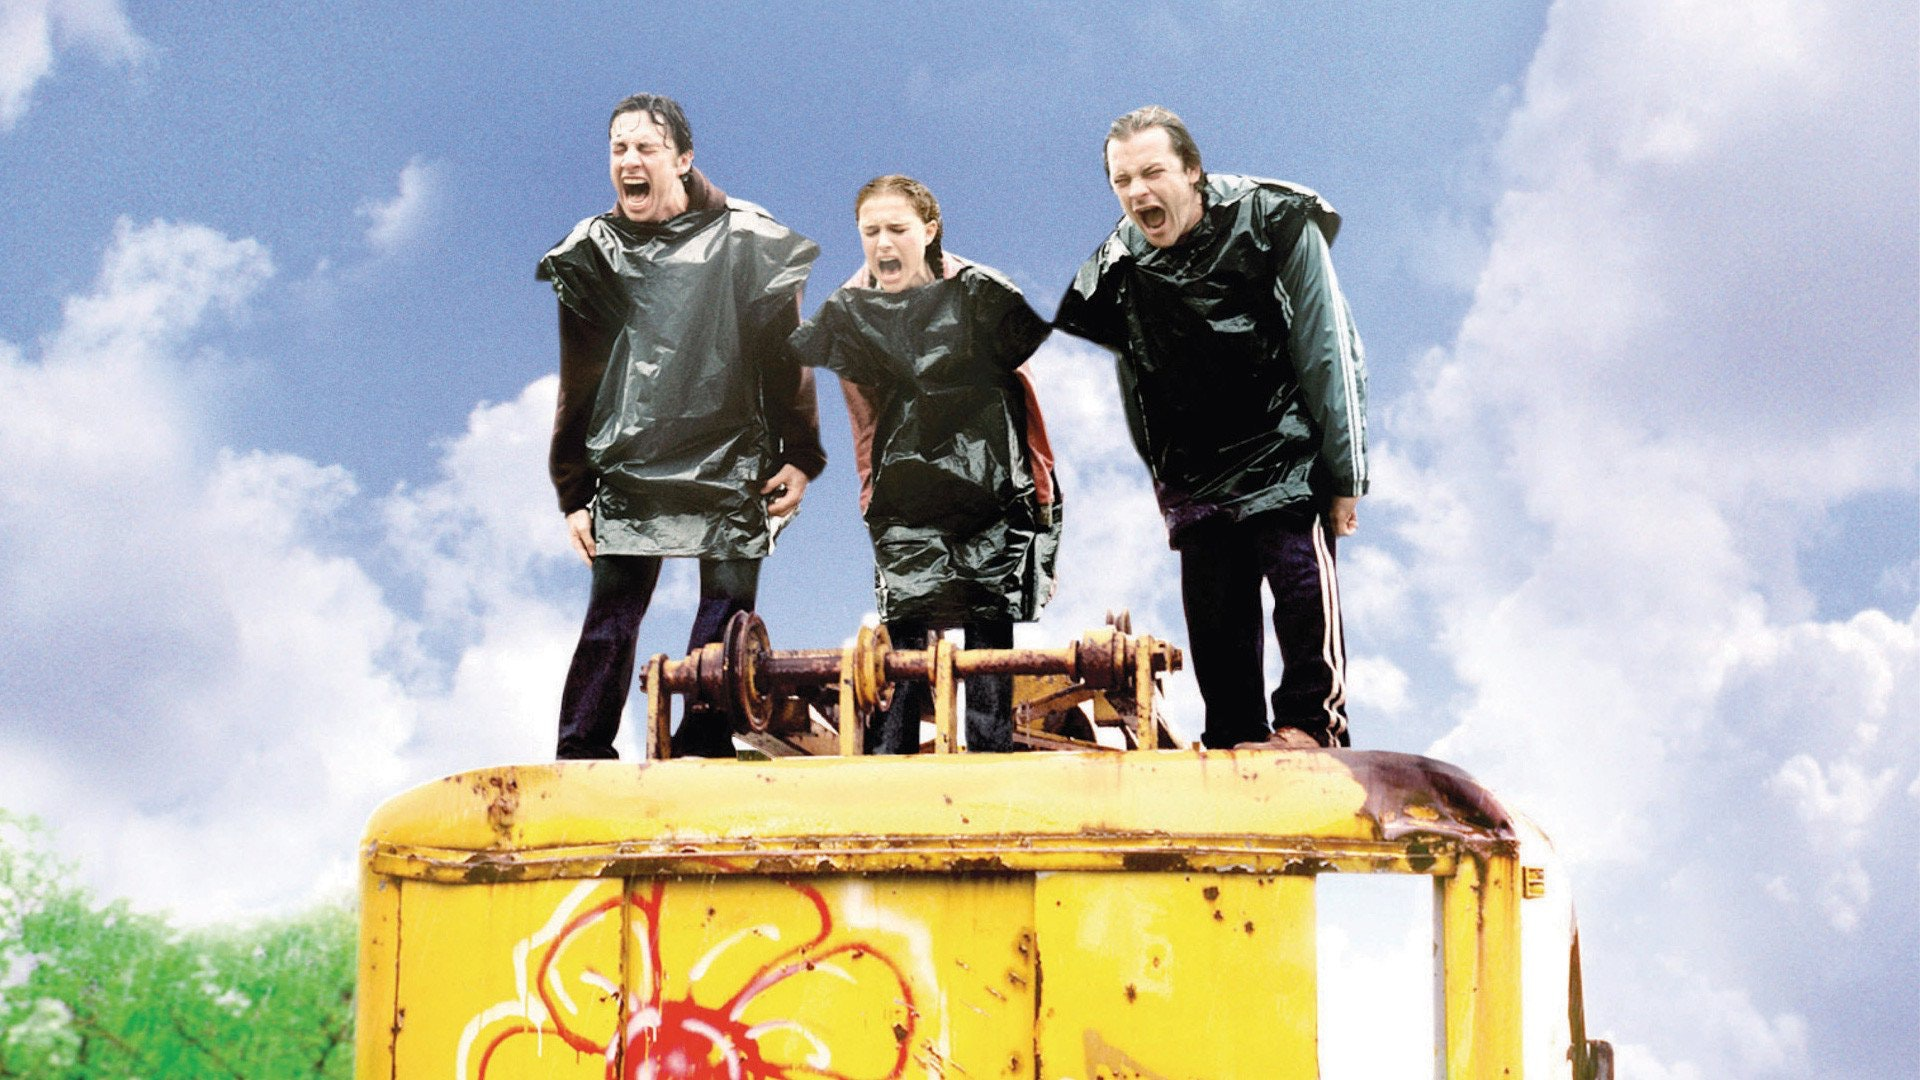 Garden State Soundtrack Music Complete Song List Tunefind